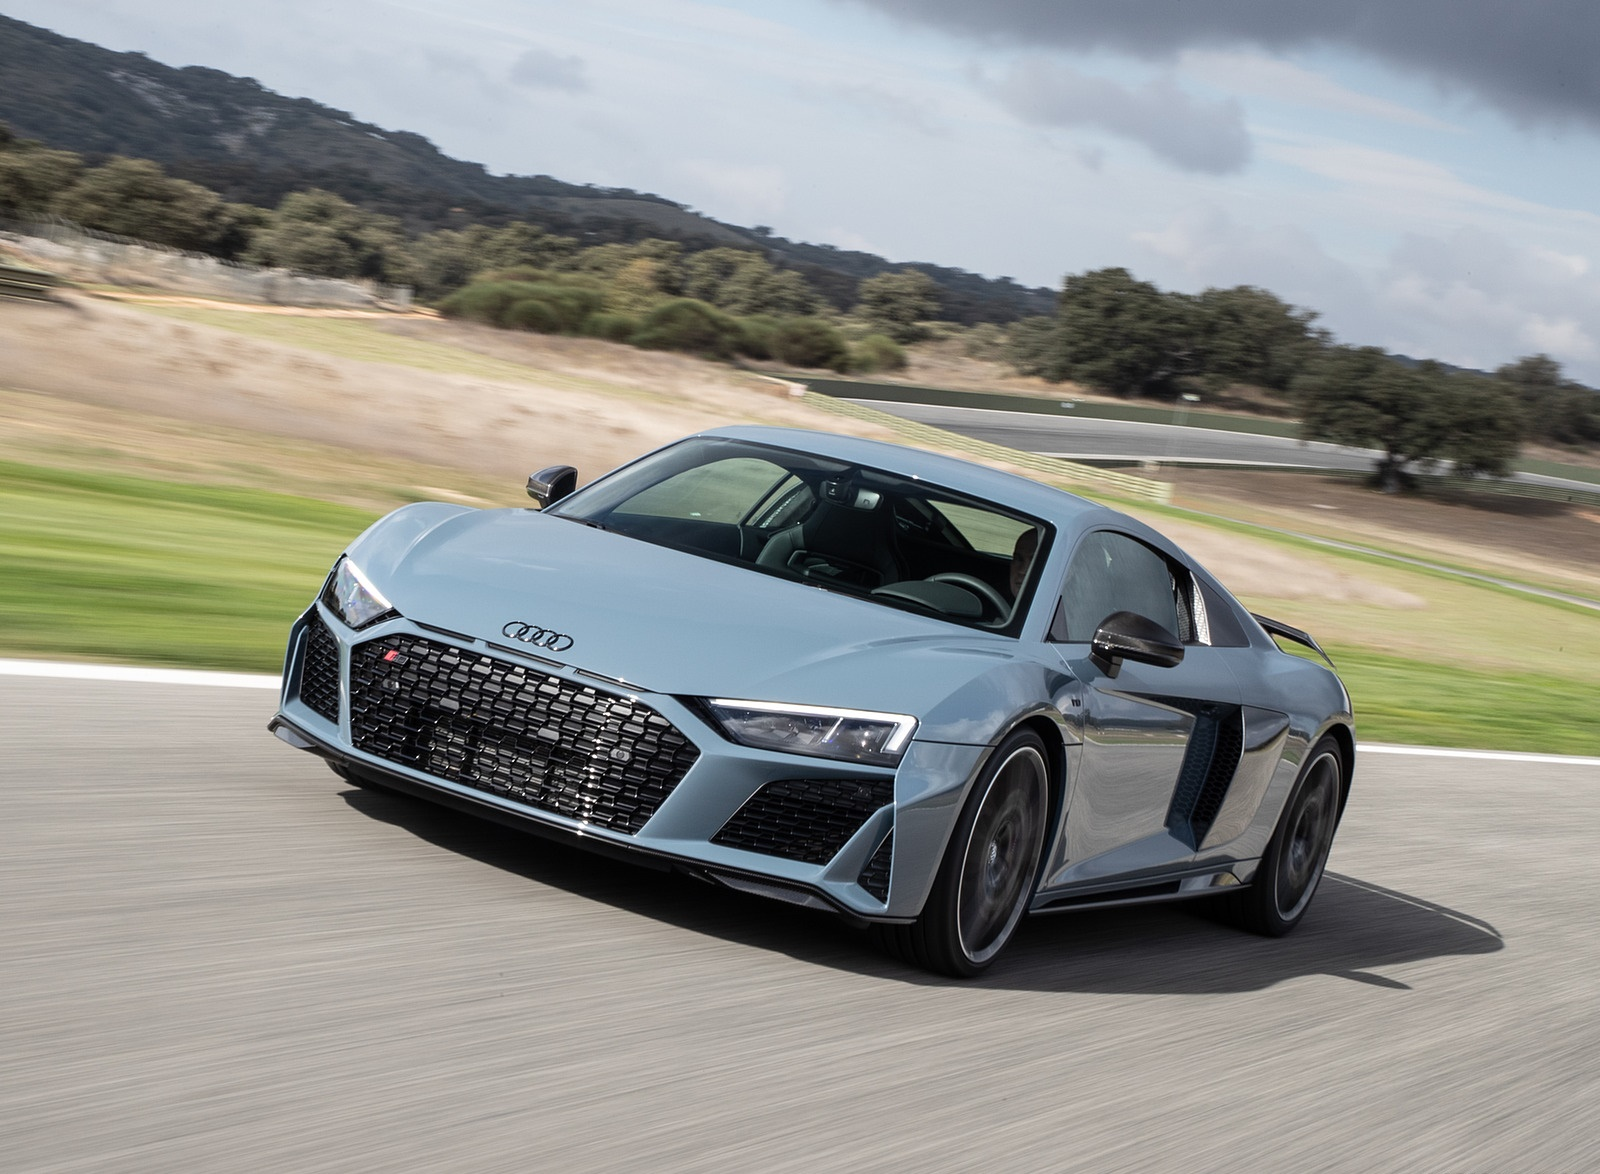 2019 Audi R8 V10 Coupe (Color: Kemora Gray Metallic) Front Three-Quarter Wallpapers (10)